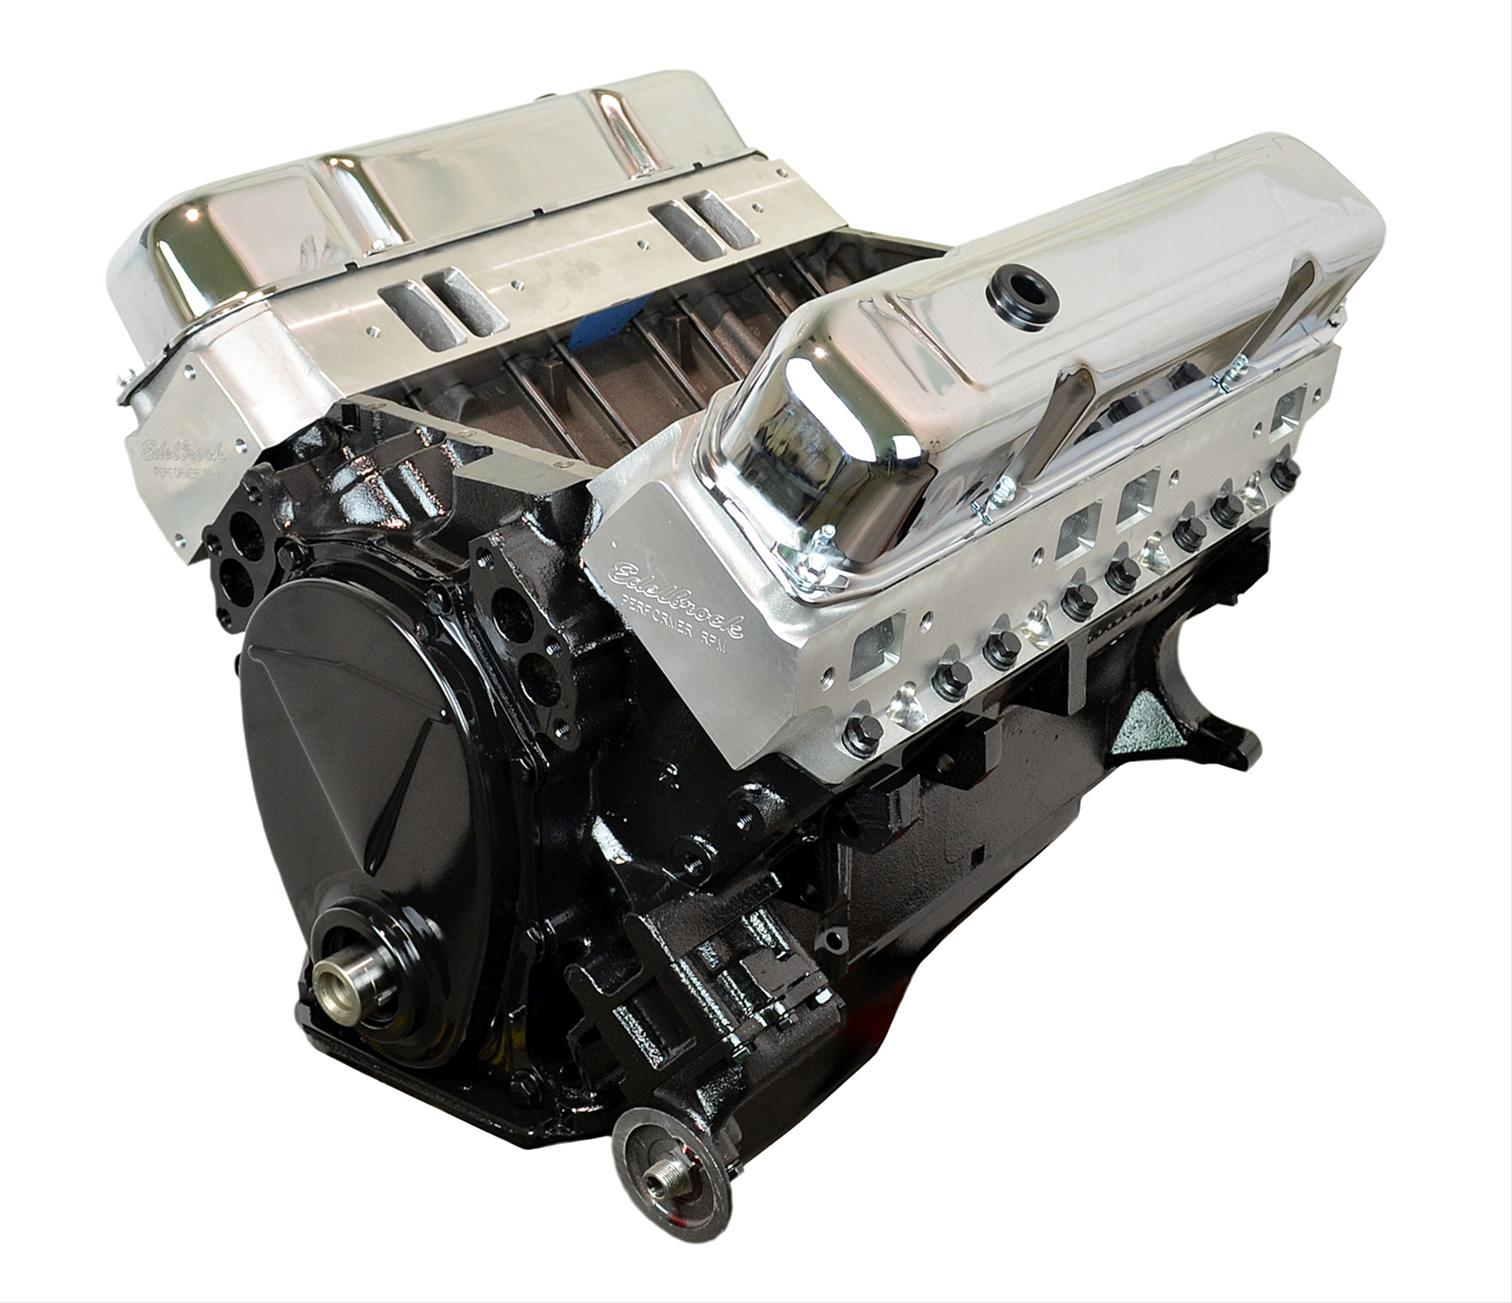 Chrysler Crate Motors For Sale: ATK High Performance Chrysler 440 520HP Stage 1 Crate